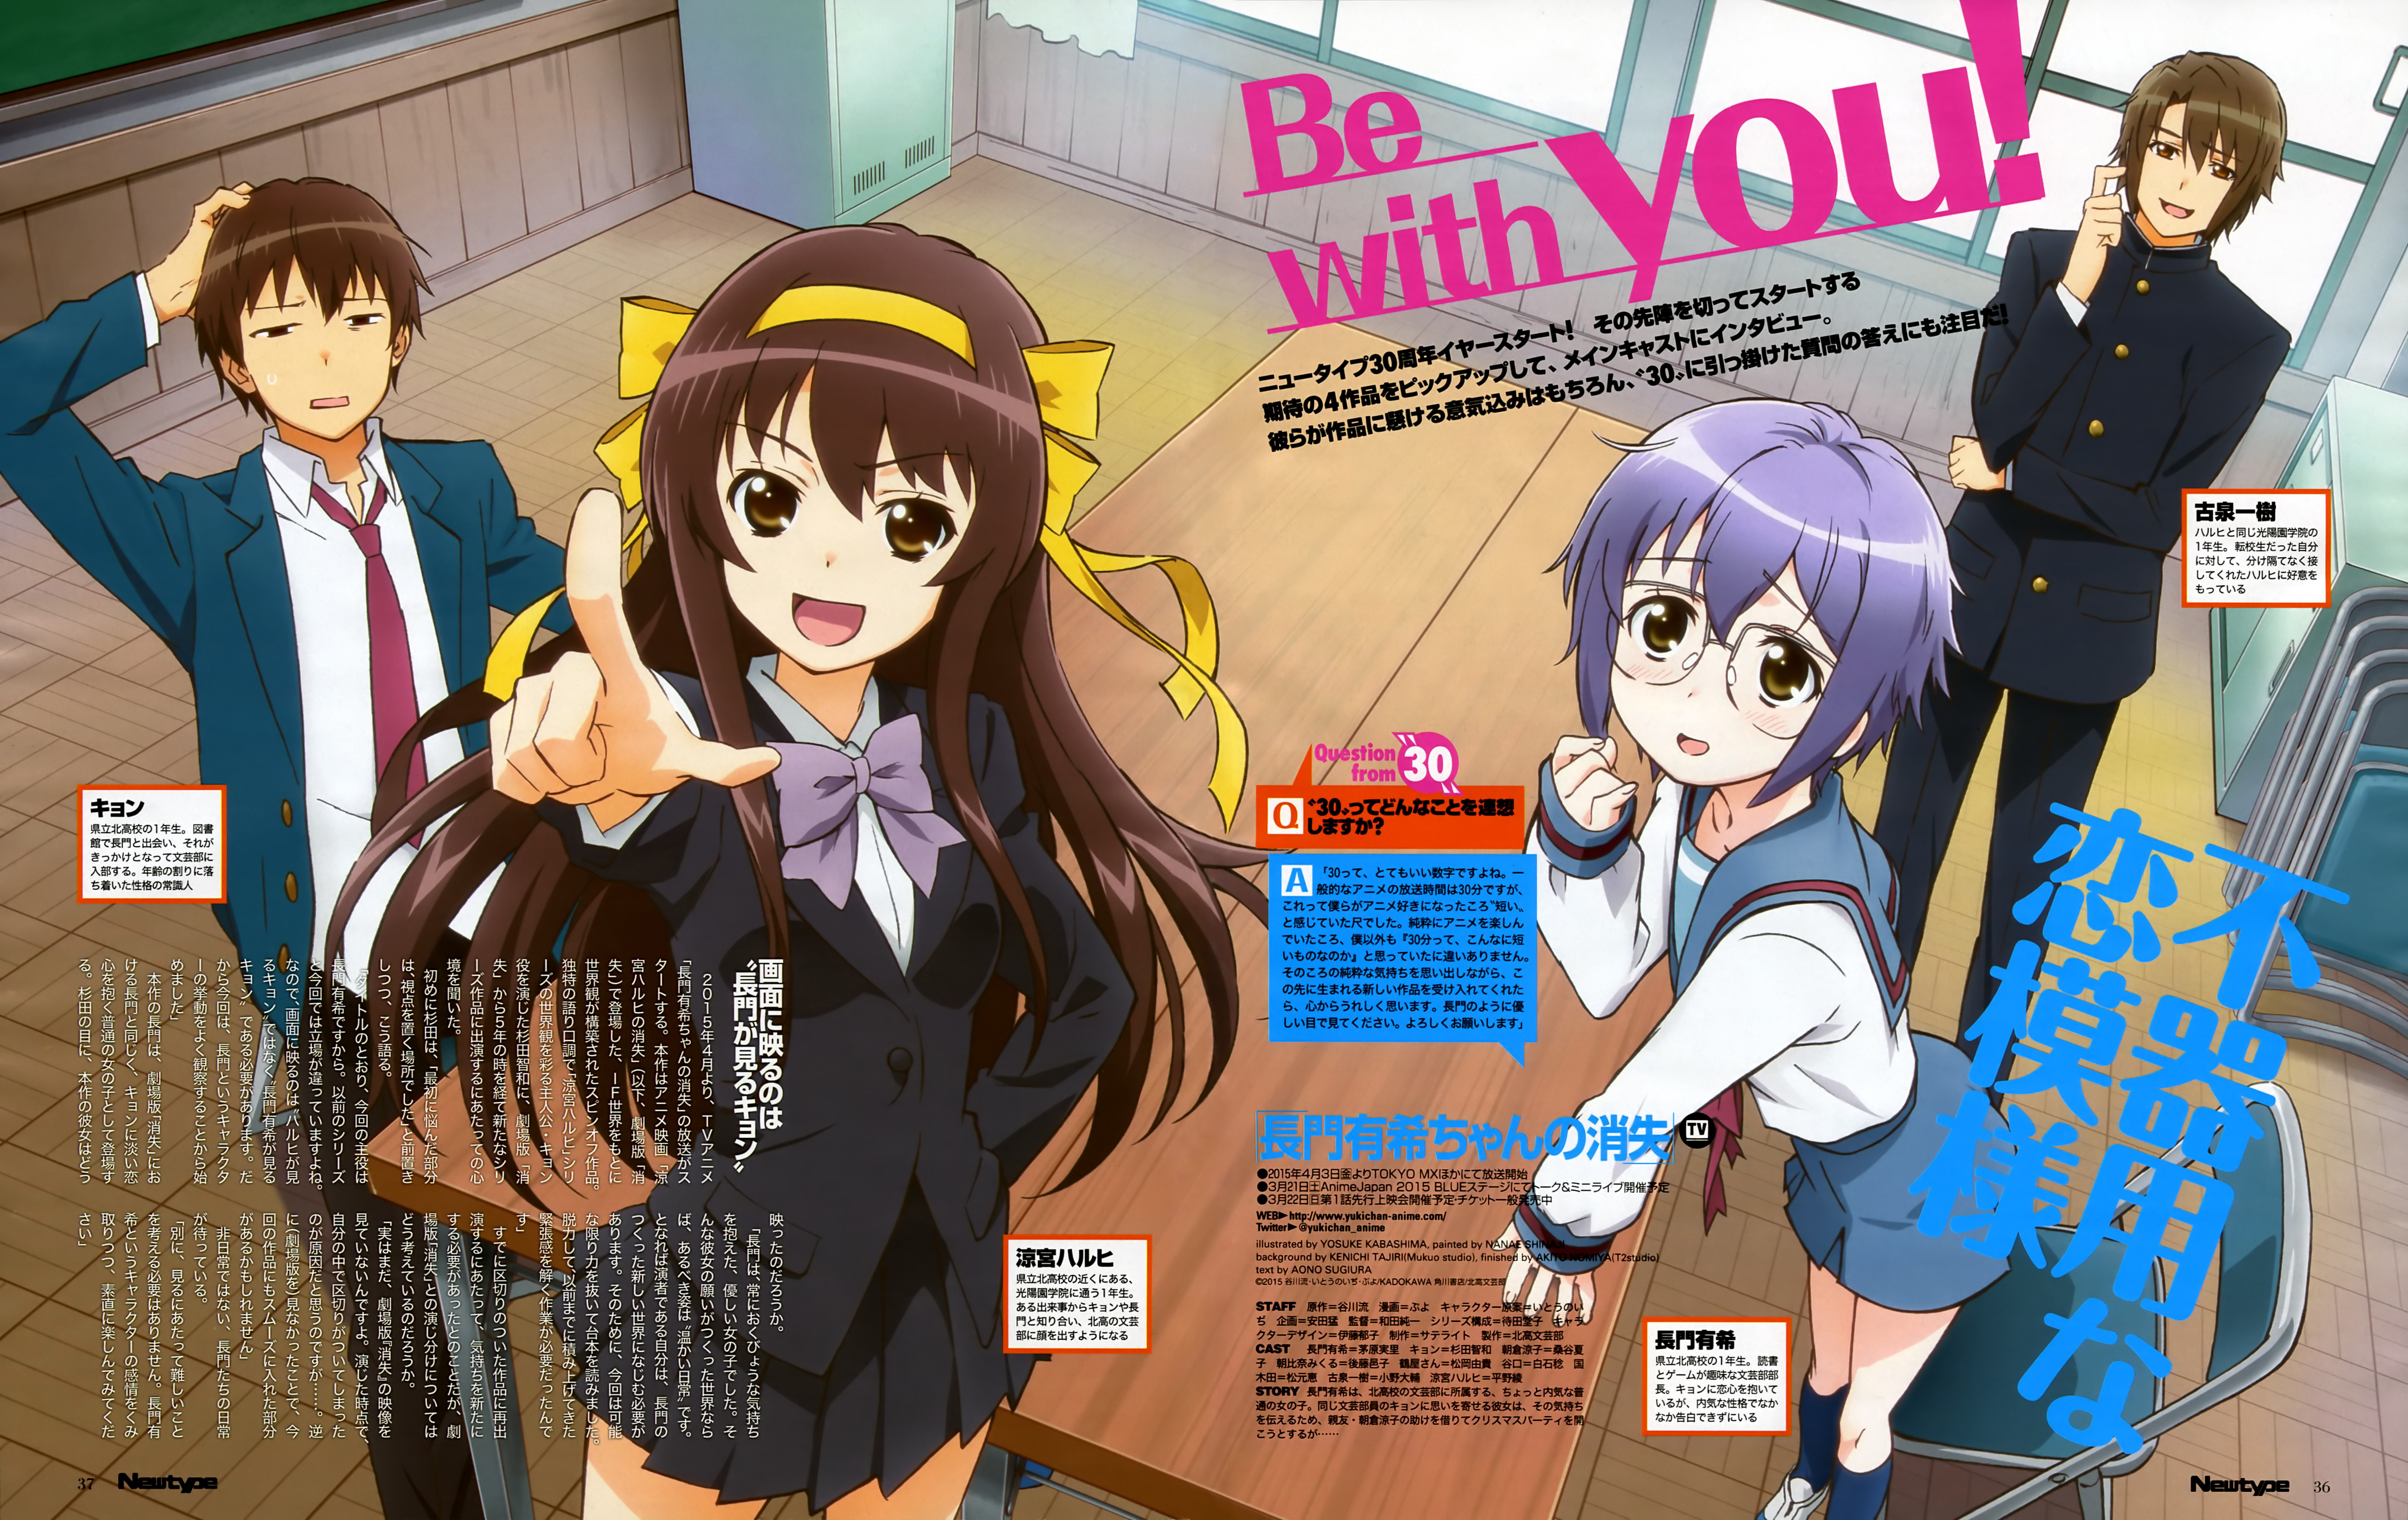 The-Disappearance-of-Nagato-Yuki-Chan-Anime-Magazine-Visual-05